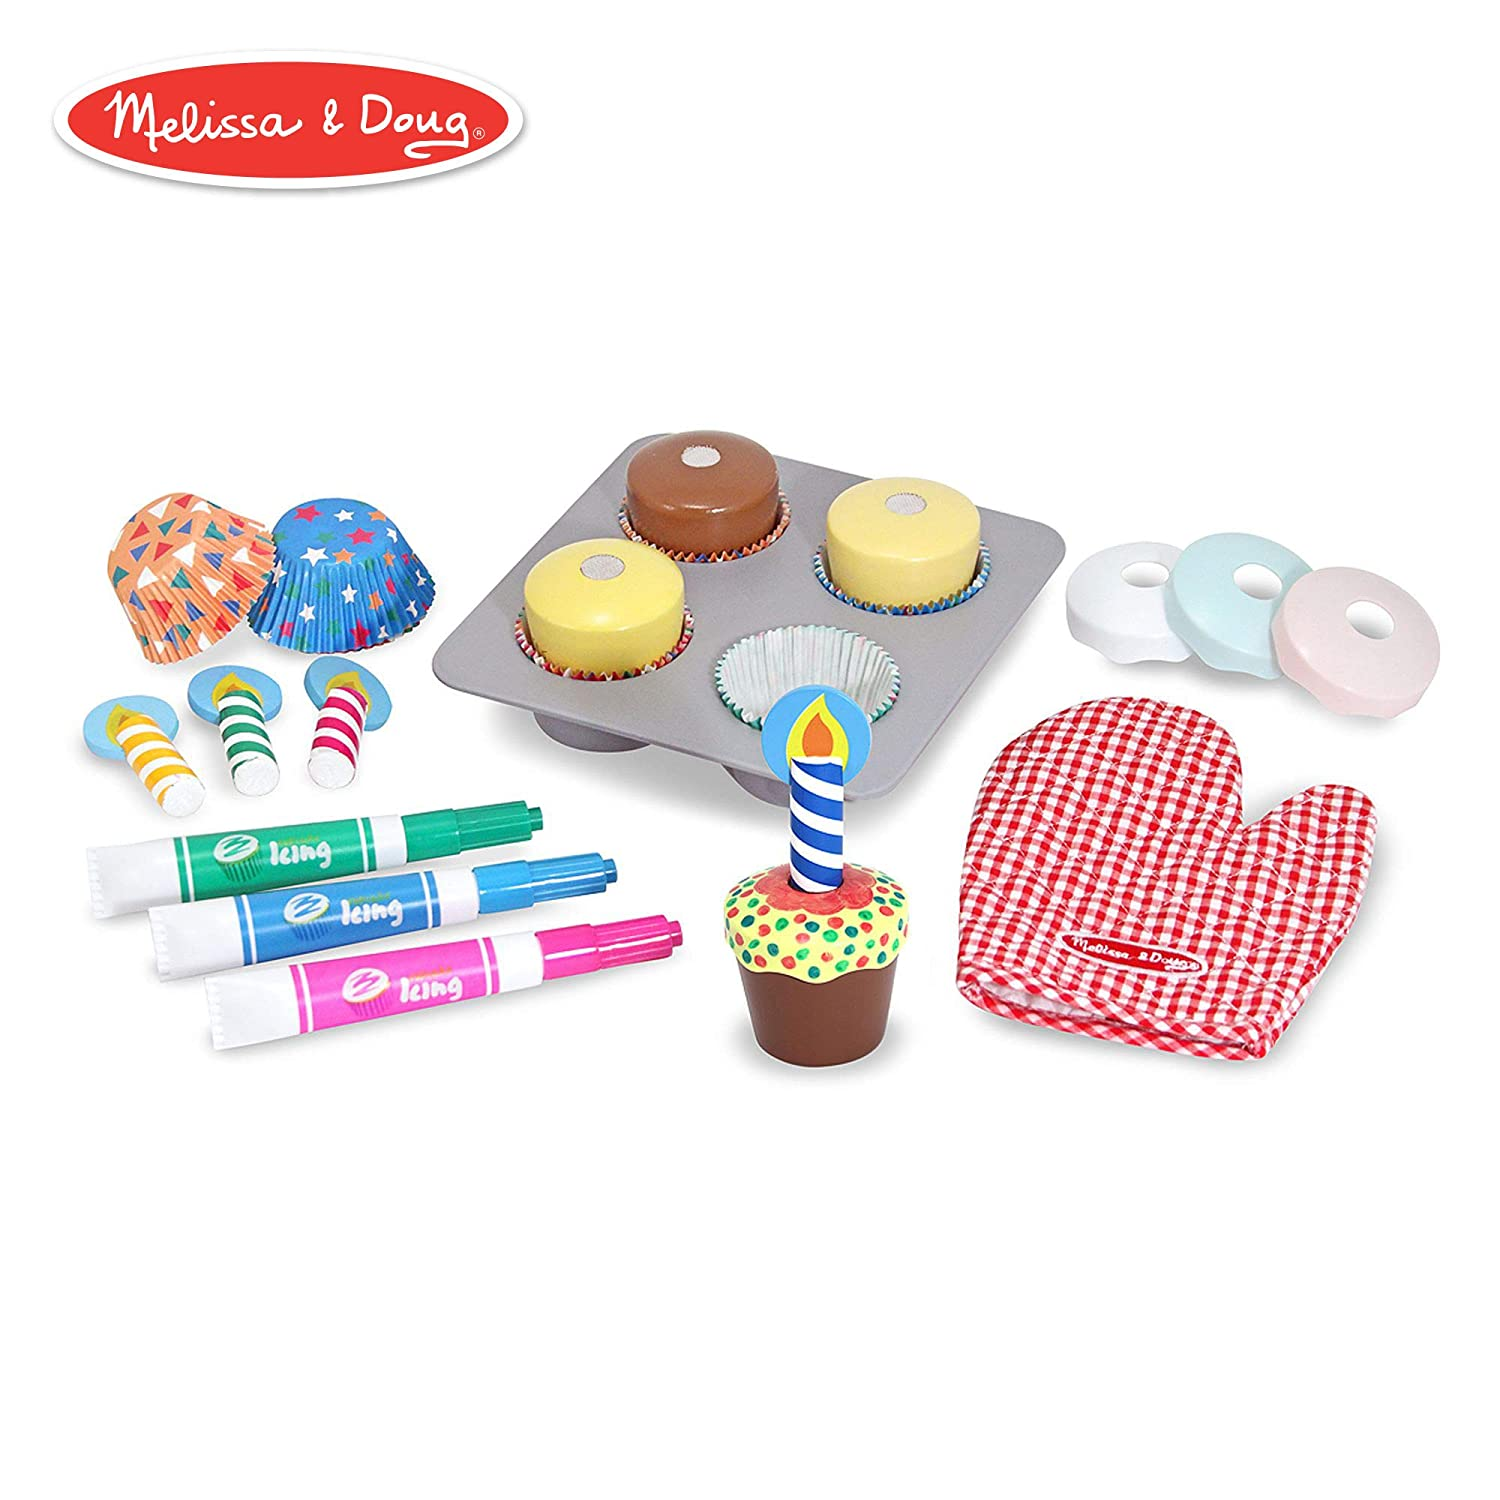 "Melissa & Doug Bake & Decorate Cupcake Set (Pretend Play, Colorful Wooden Play-Food Set, Materials, 22 Pieces, 13"" H x 10.4"" W x 3"" L)"